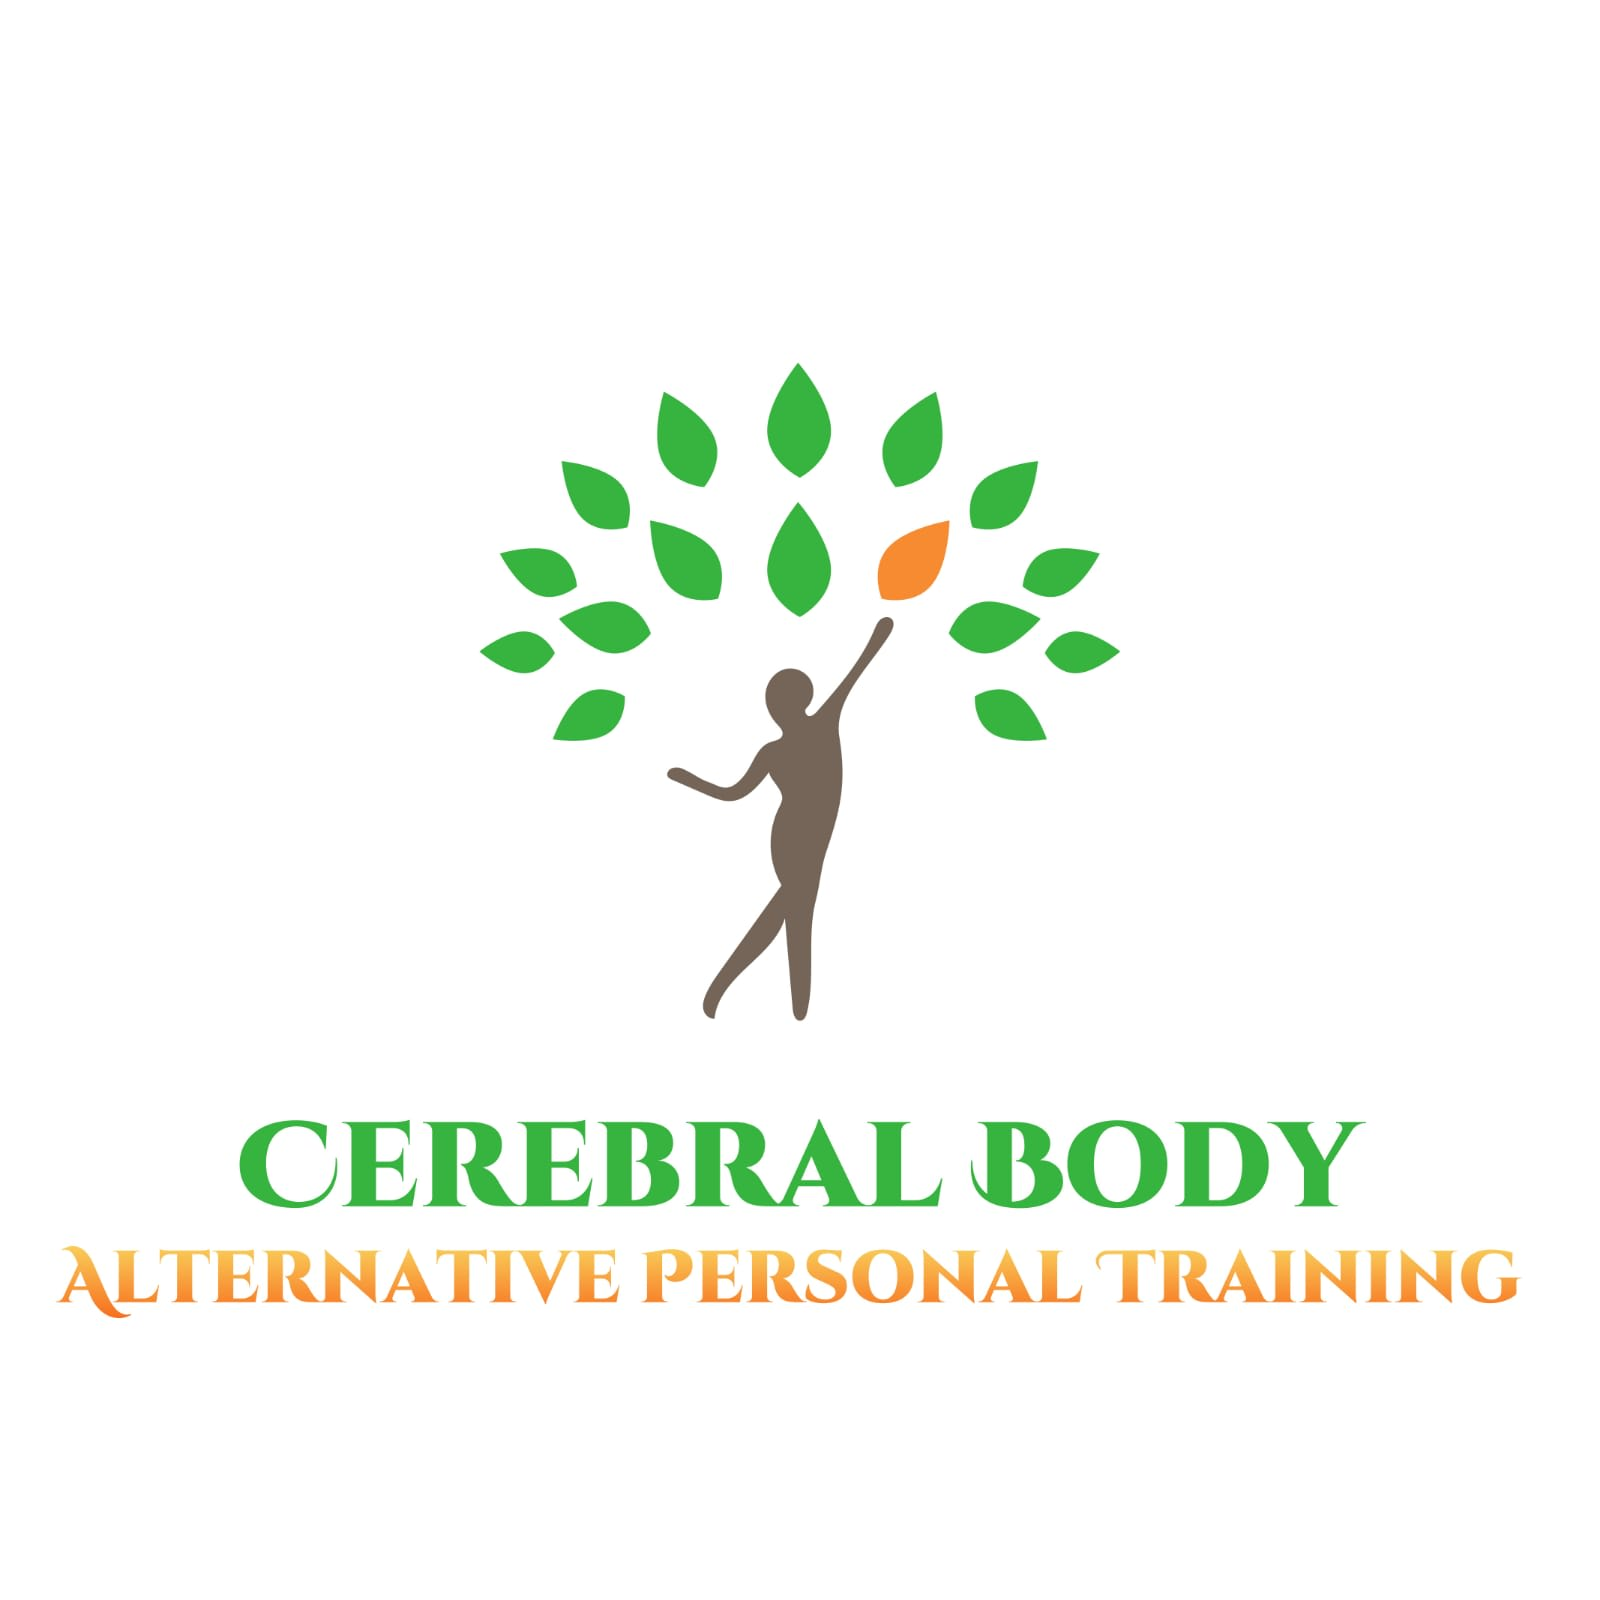 Cerebral Body LLC